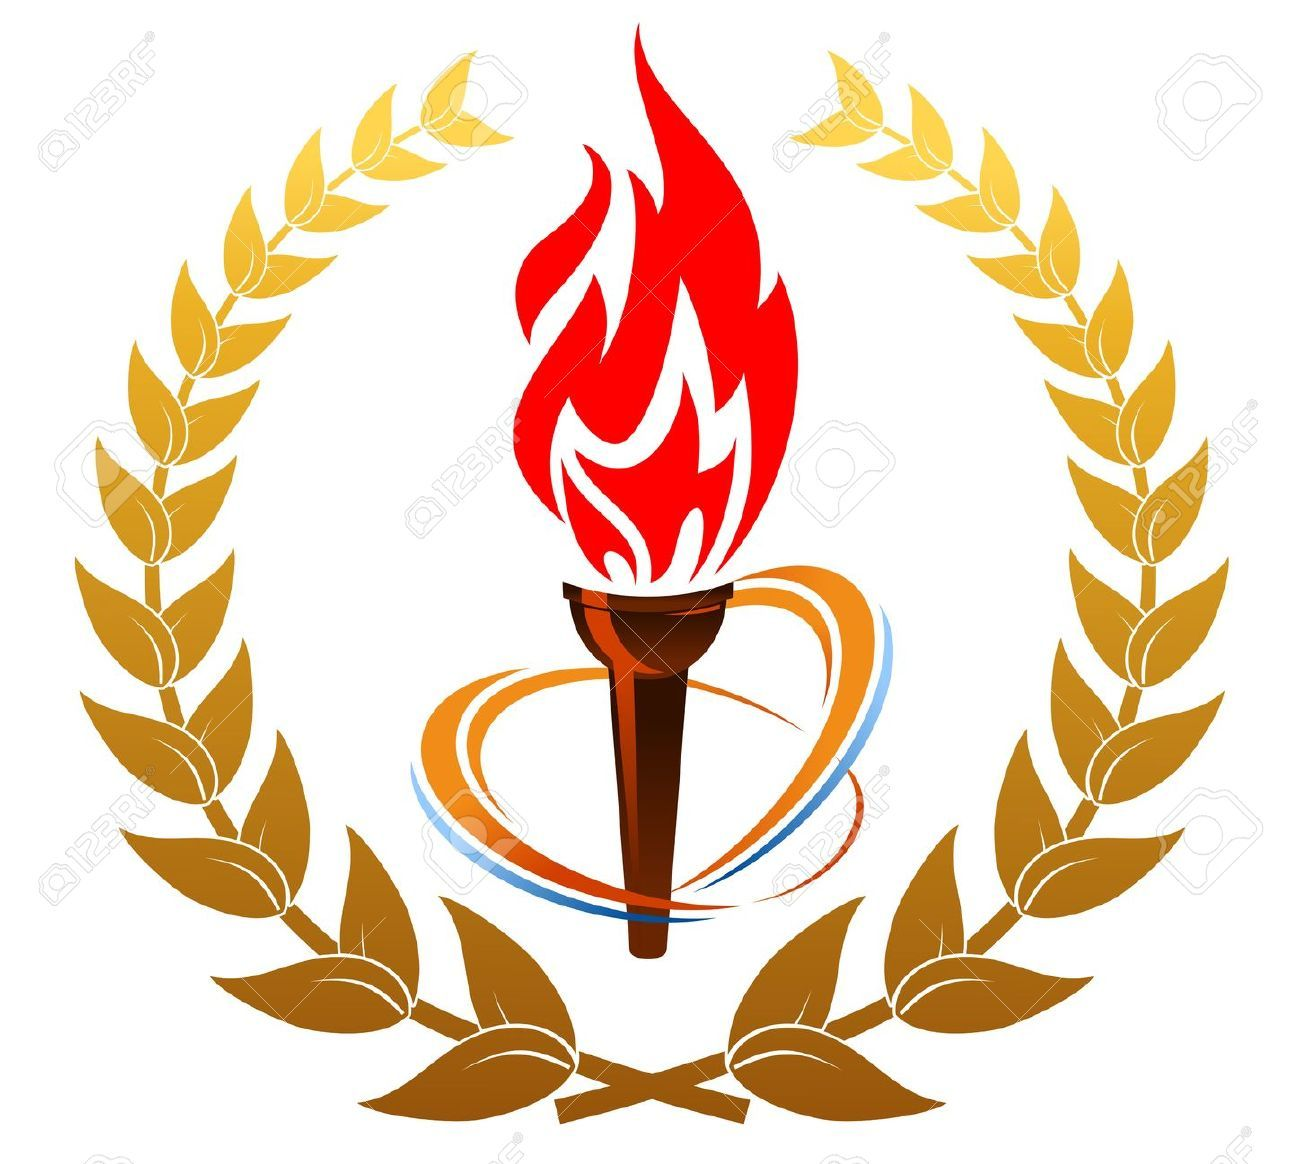 Fire Torch Cliparts Stock Vector And Royalty Free Fire